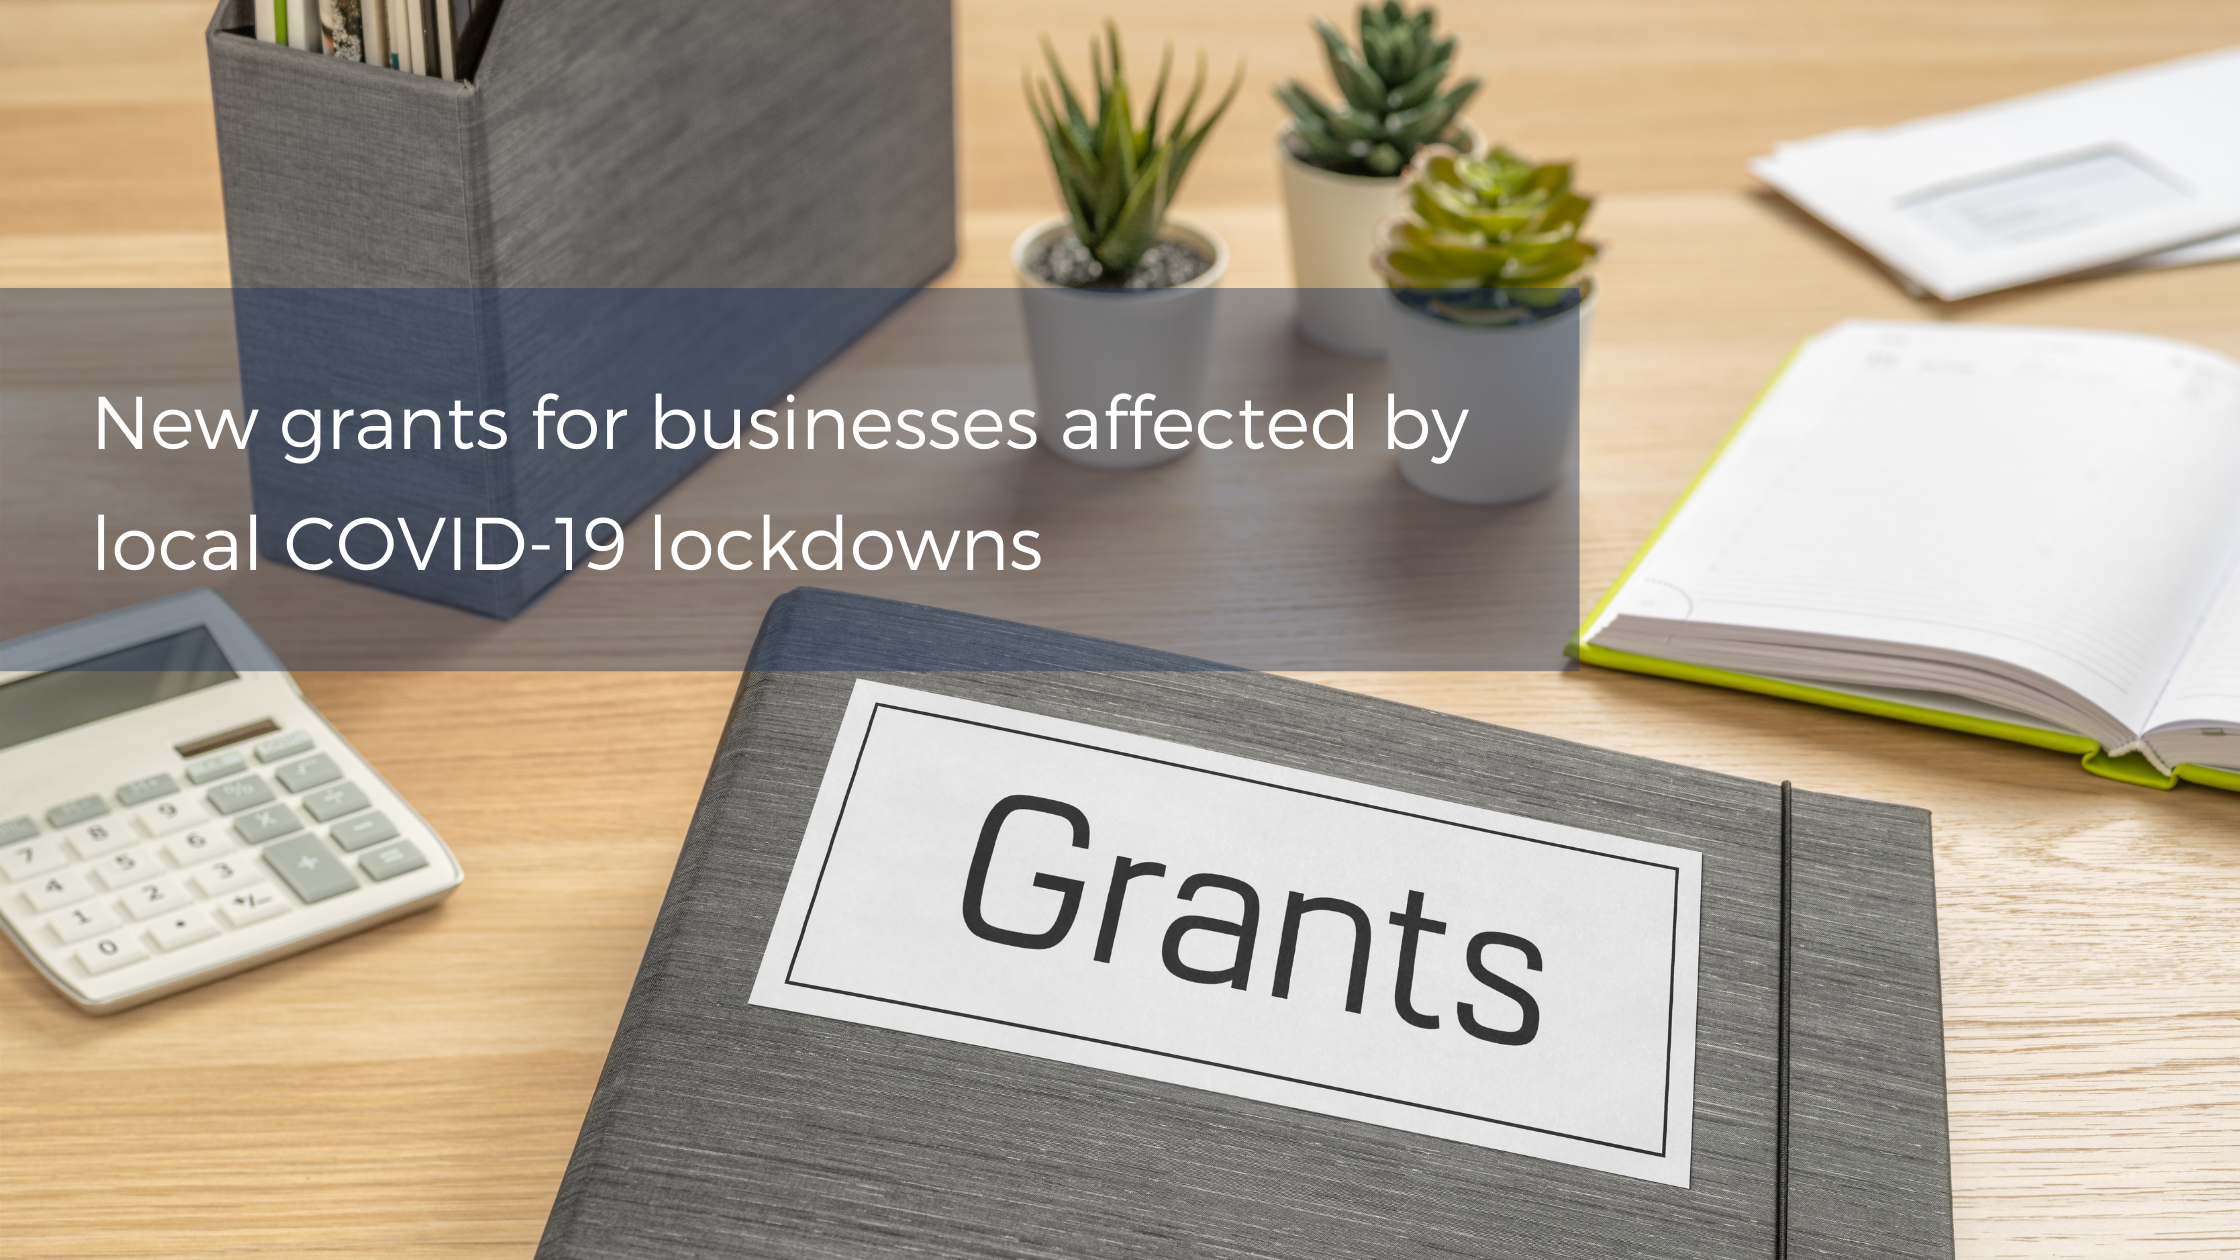 COVID-19: New Grants For Businesses Affected By Local Lockdowns